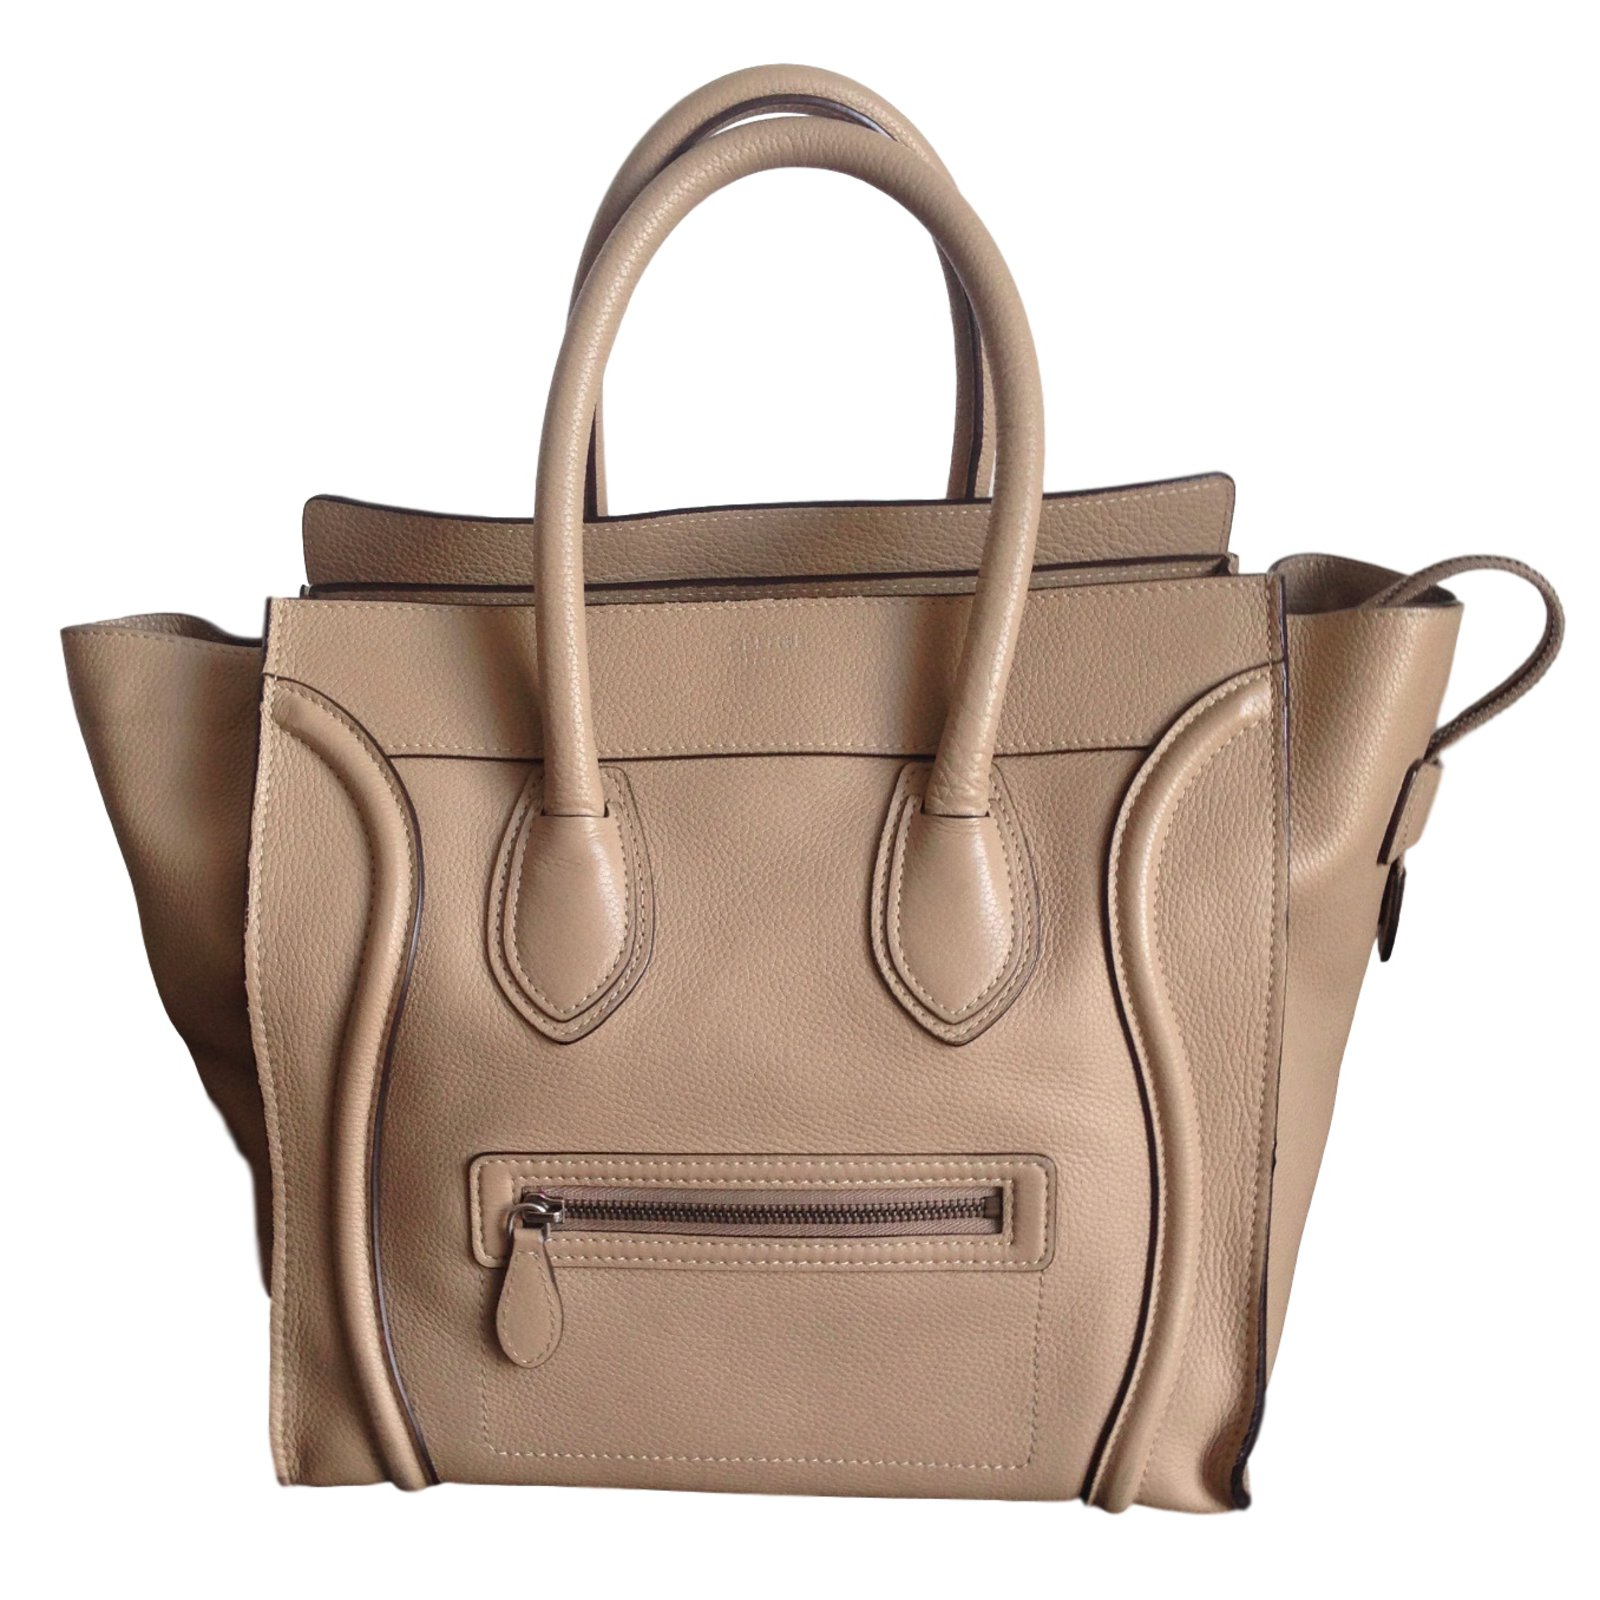 celine bags cheap - Handbags C��line Handbags Leather Beige ref.14866 - Joli Closet